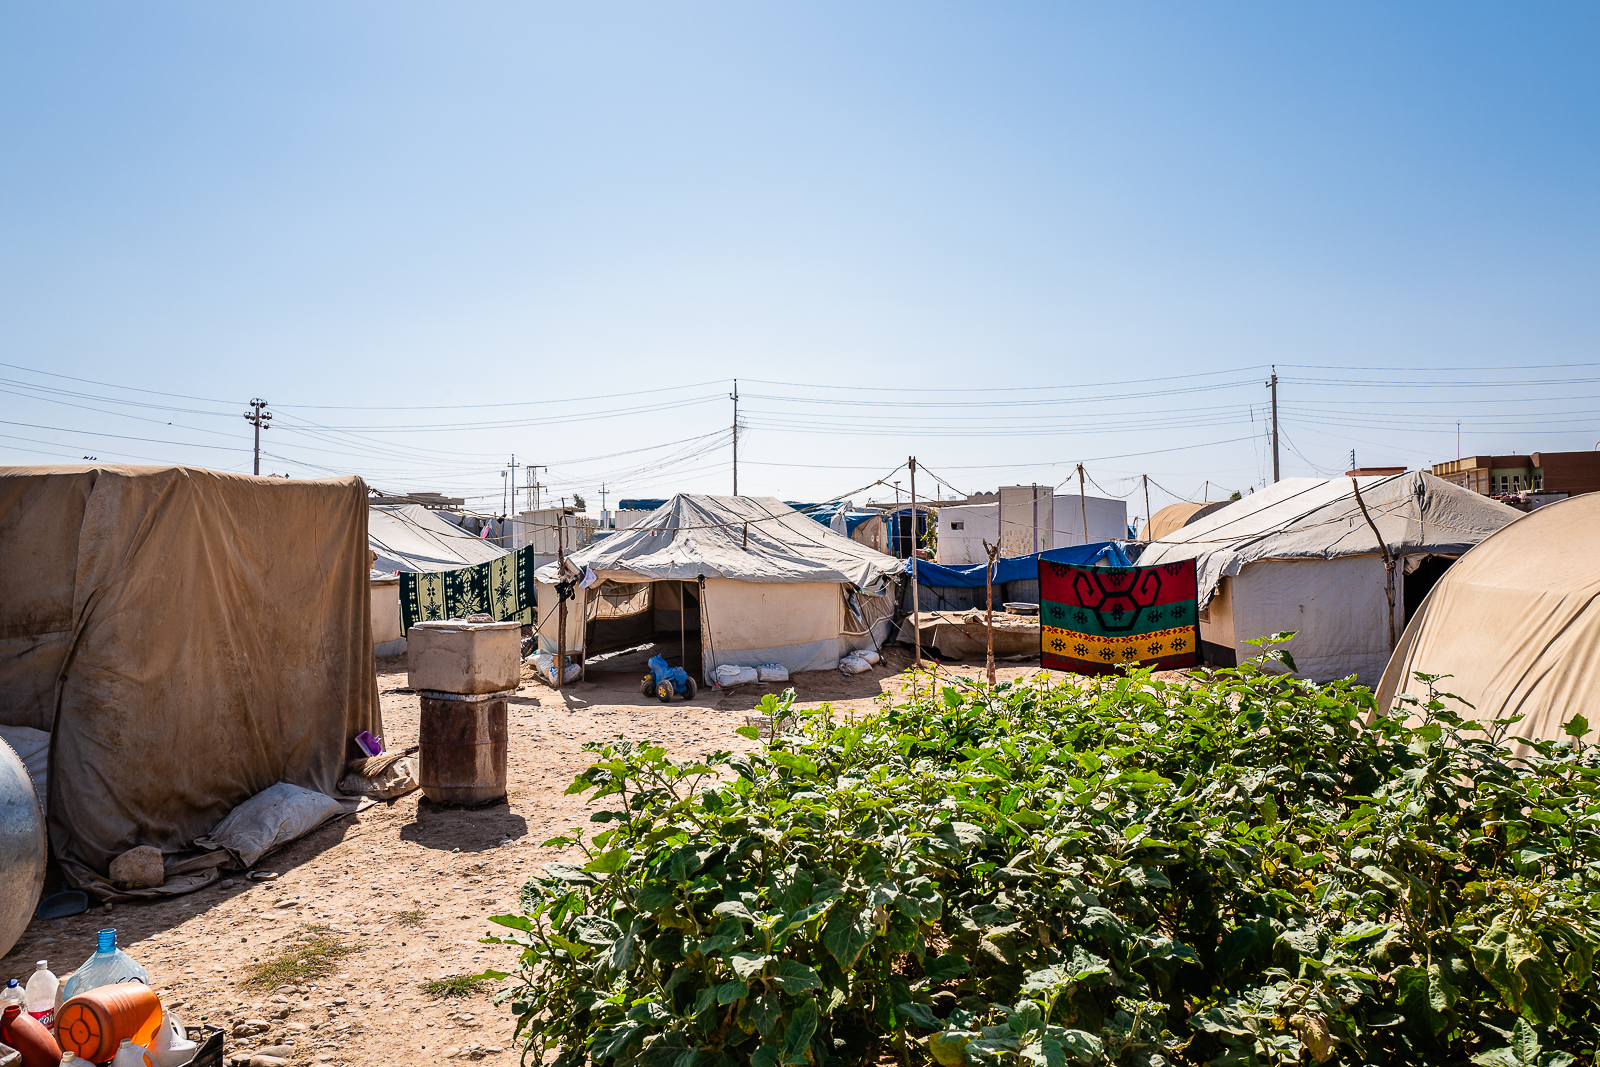 The unofficial camp in Sharya, near Dohuk